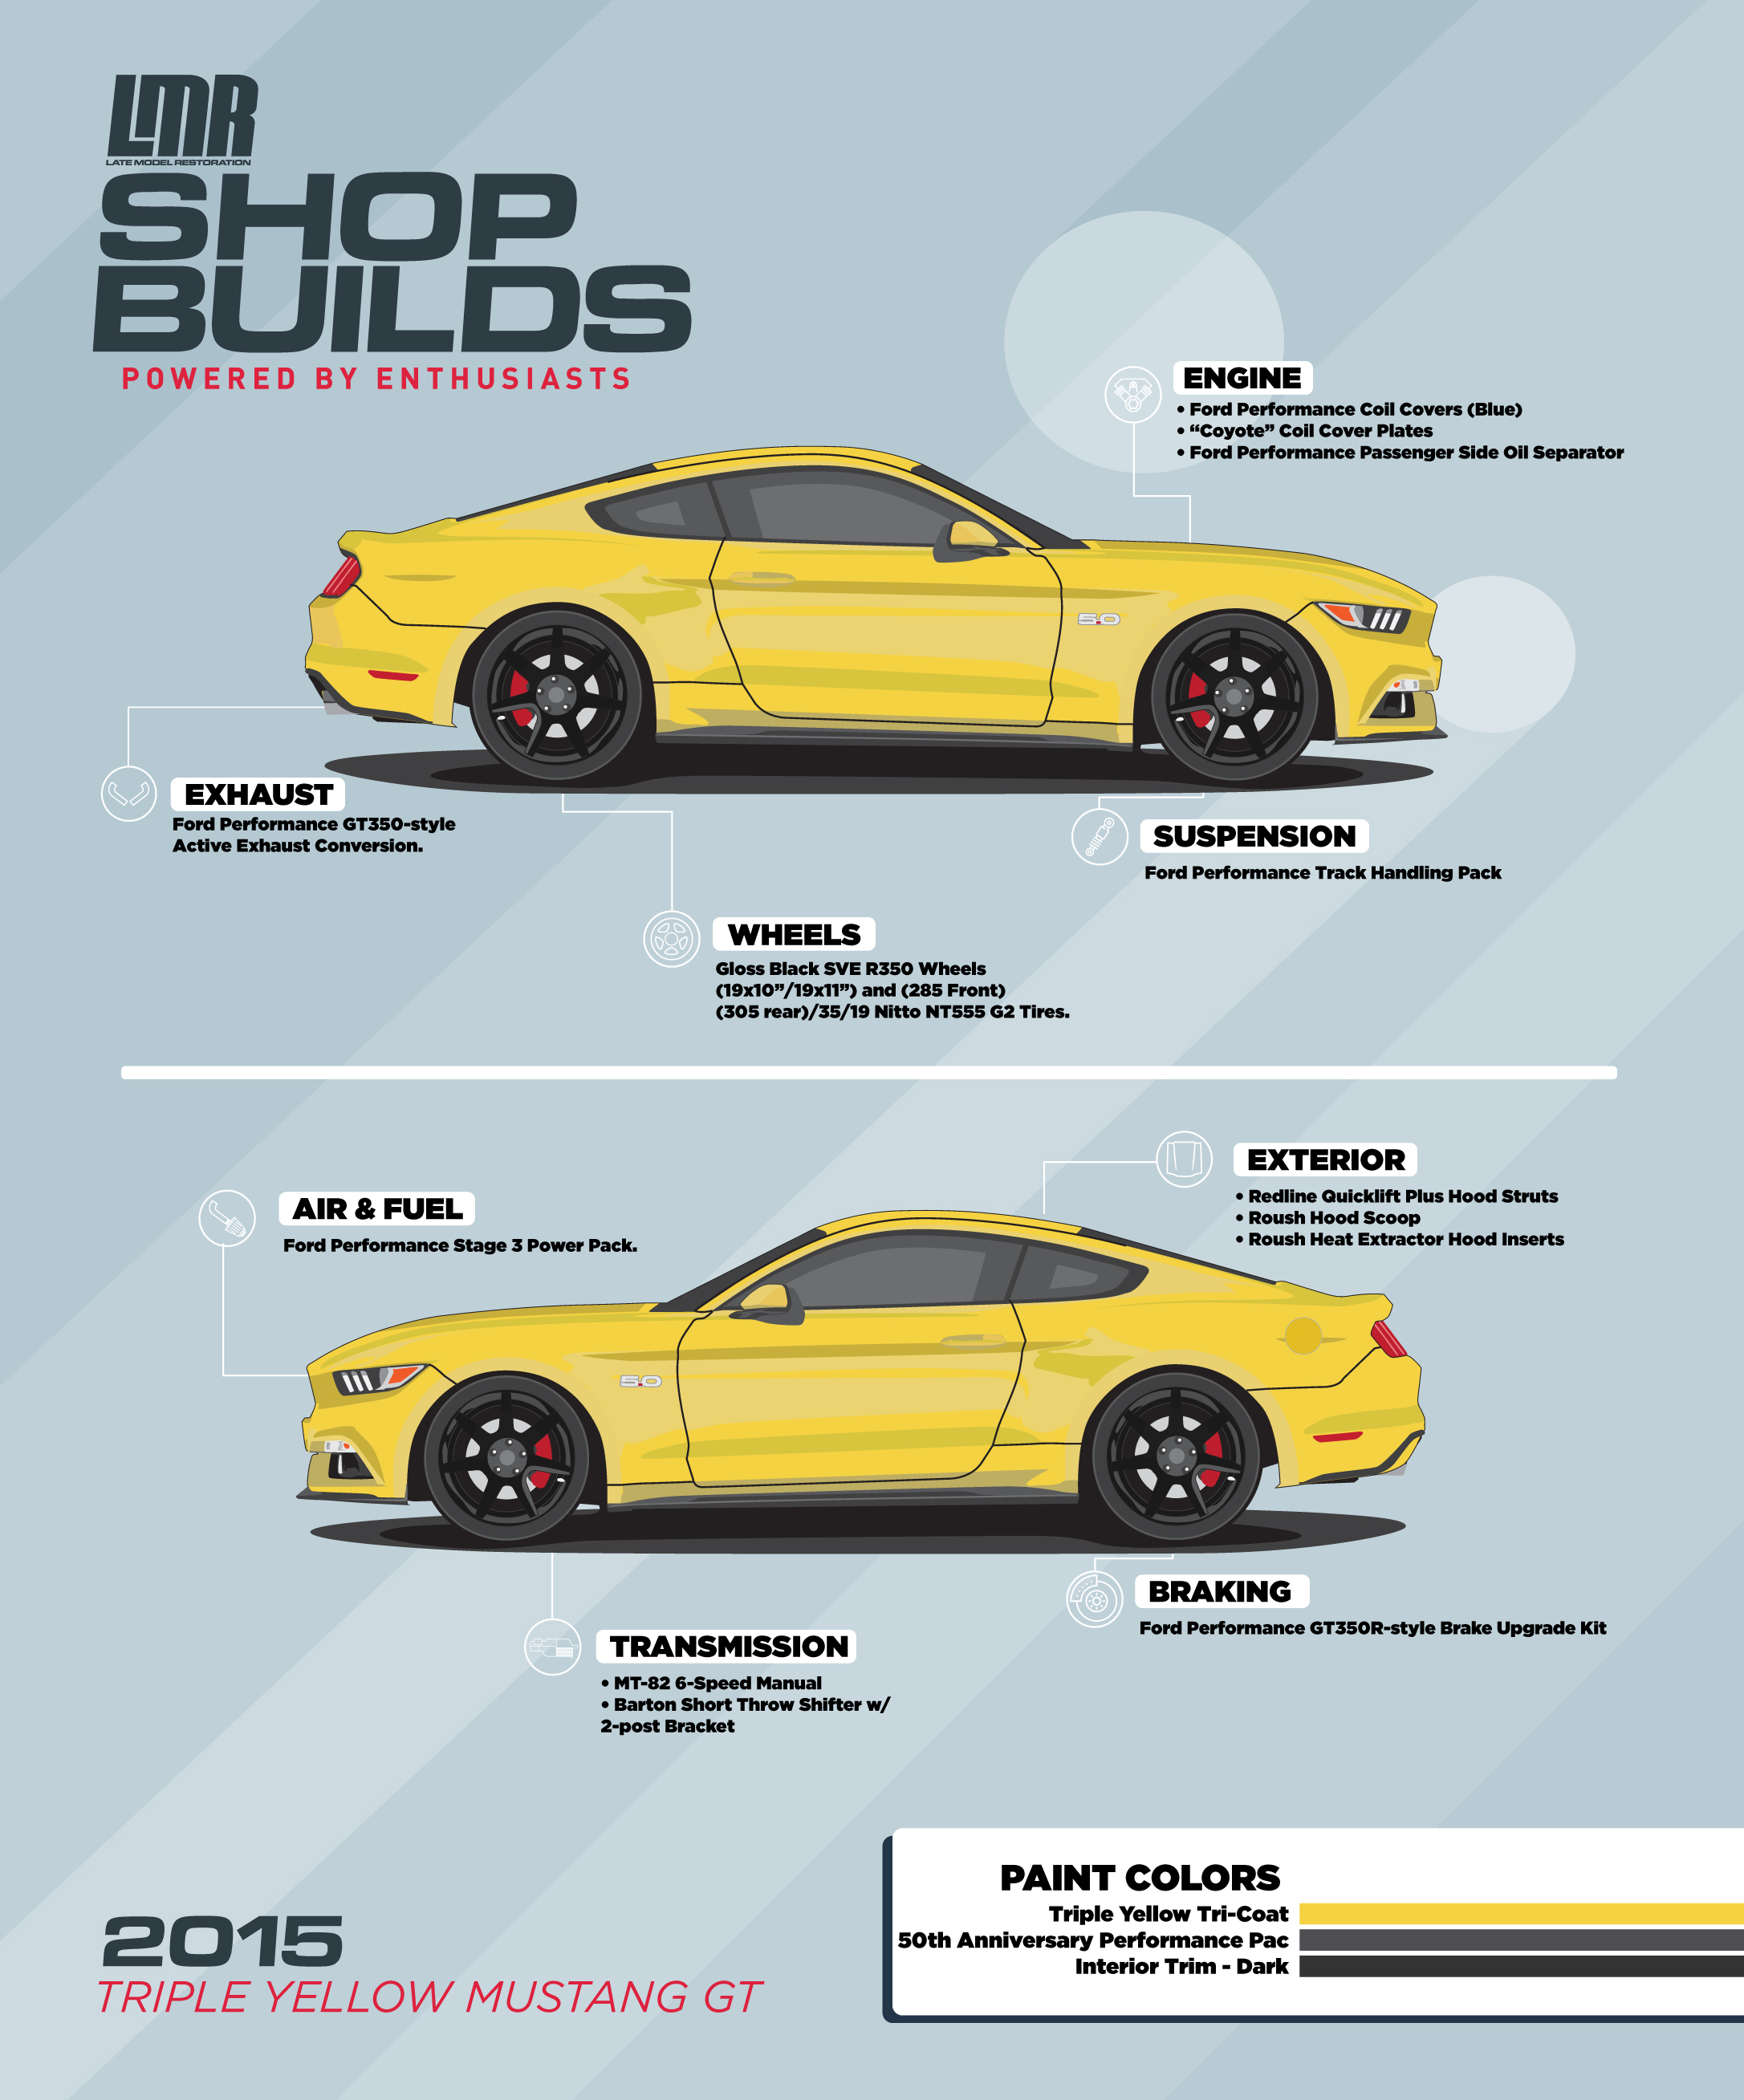 LMR Shop Car Build - 2015 Triple Yellow Mustang GT - LMR Shop Car Build - 2015 Triple Yellow Mustang GT